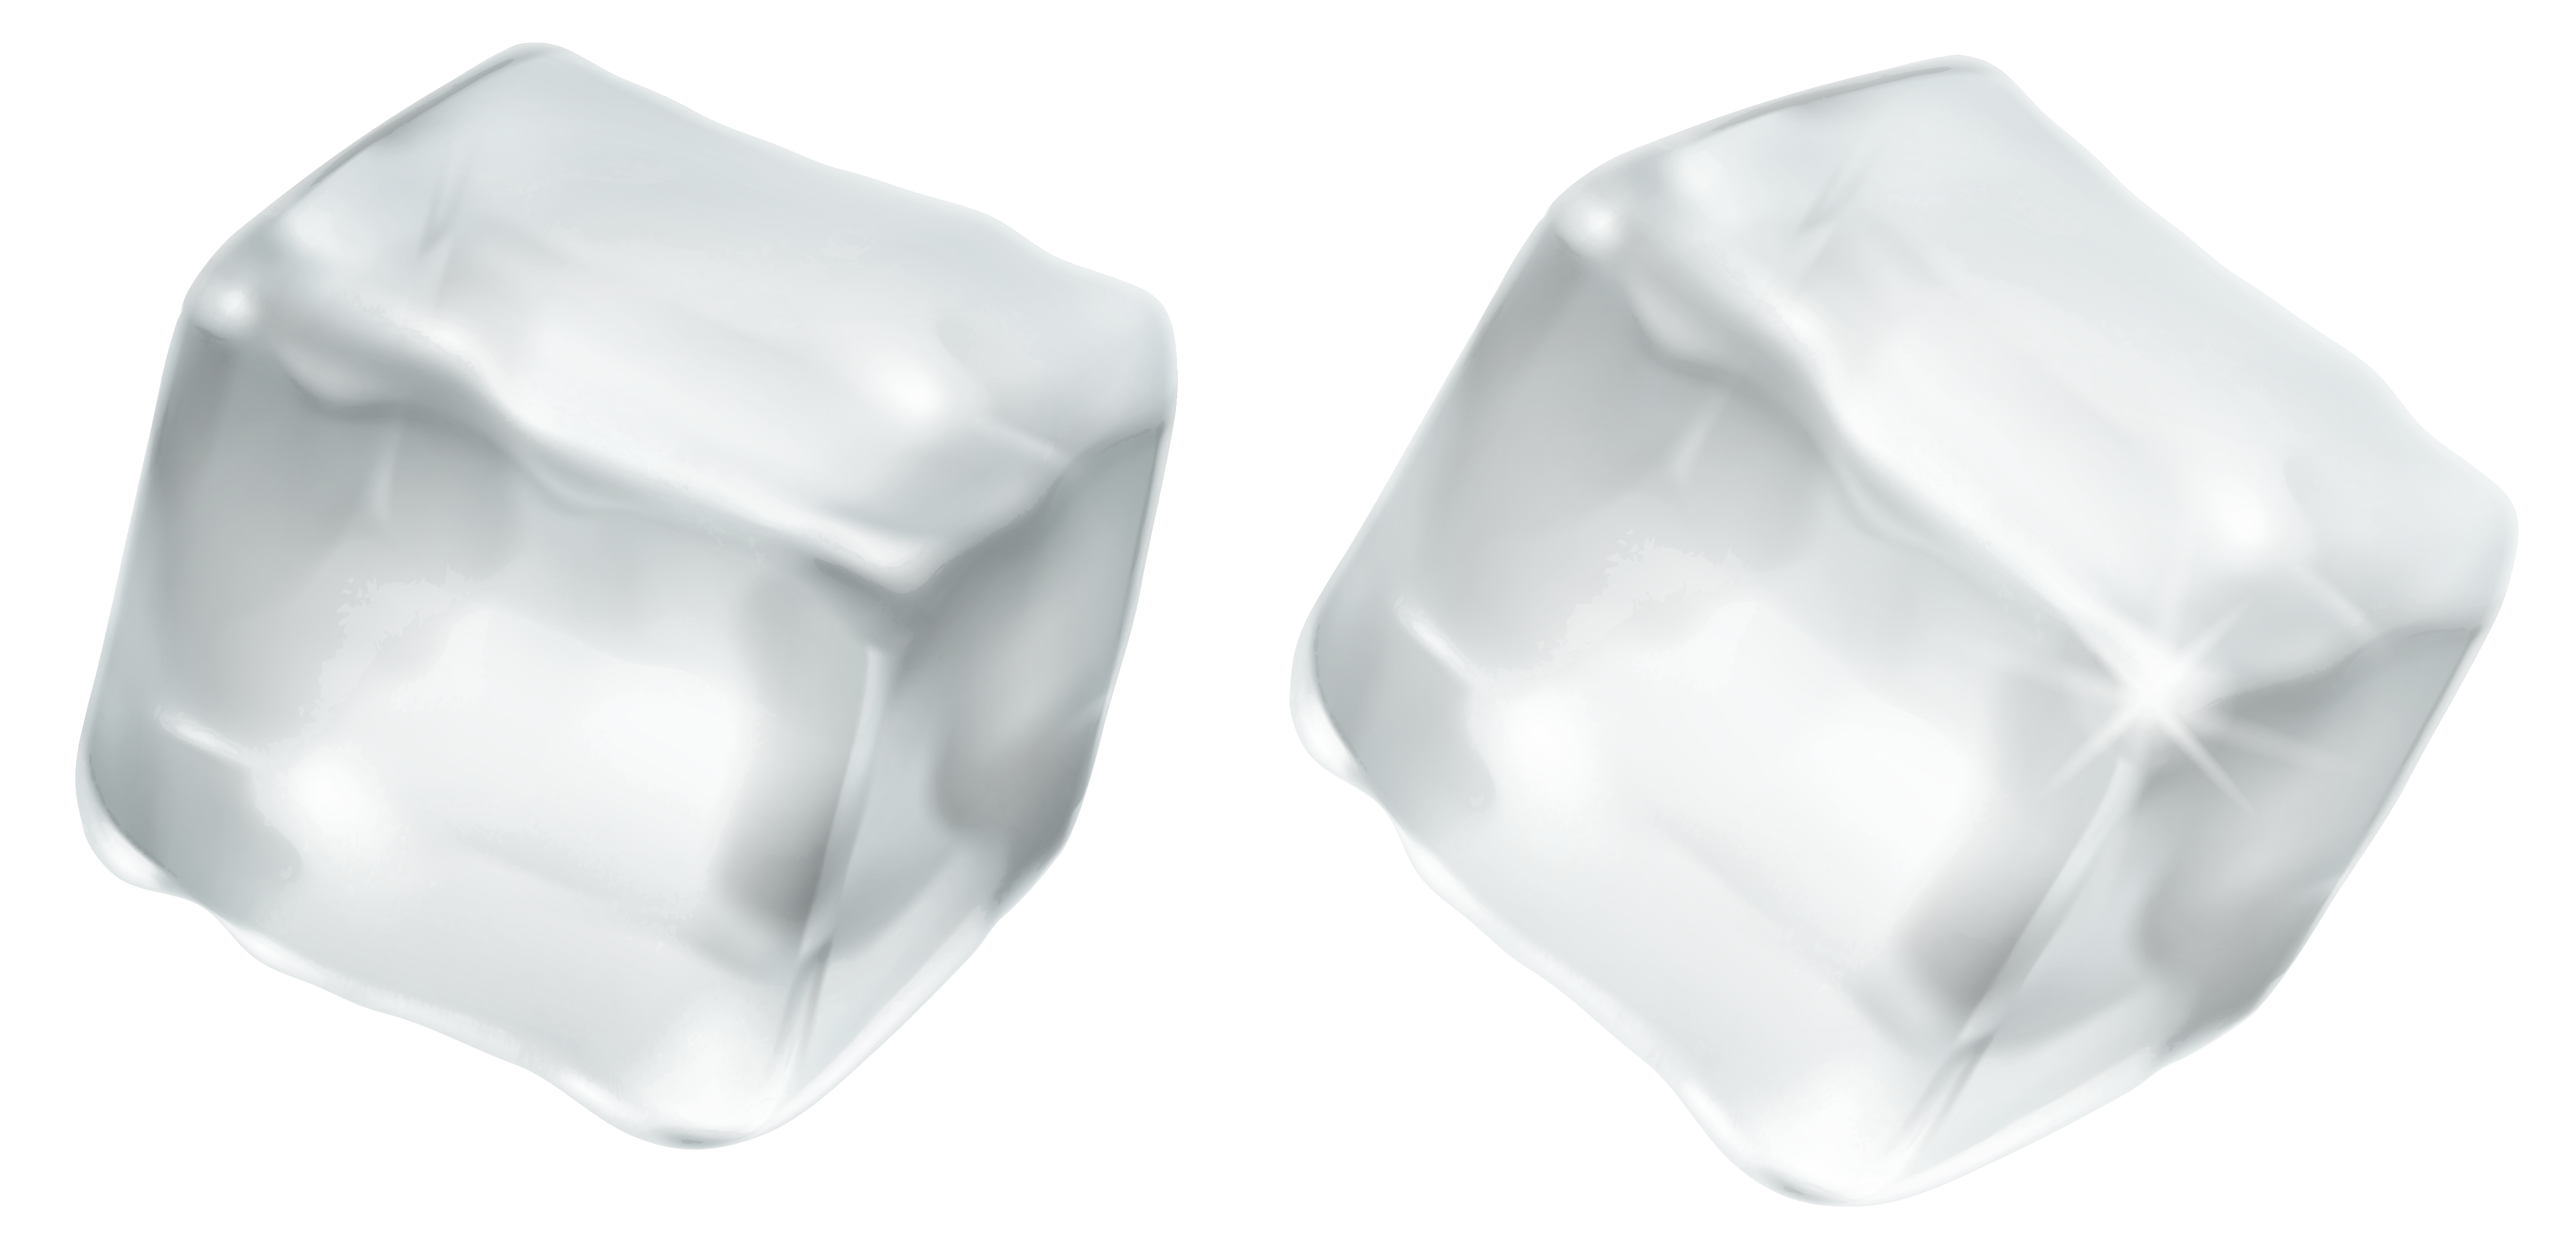 Ice cube clipart png. Image gallery yopriceville high